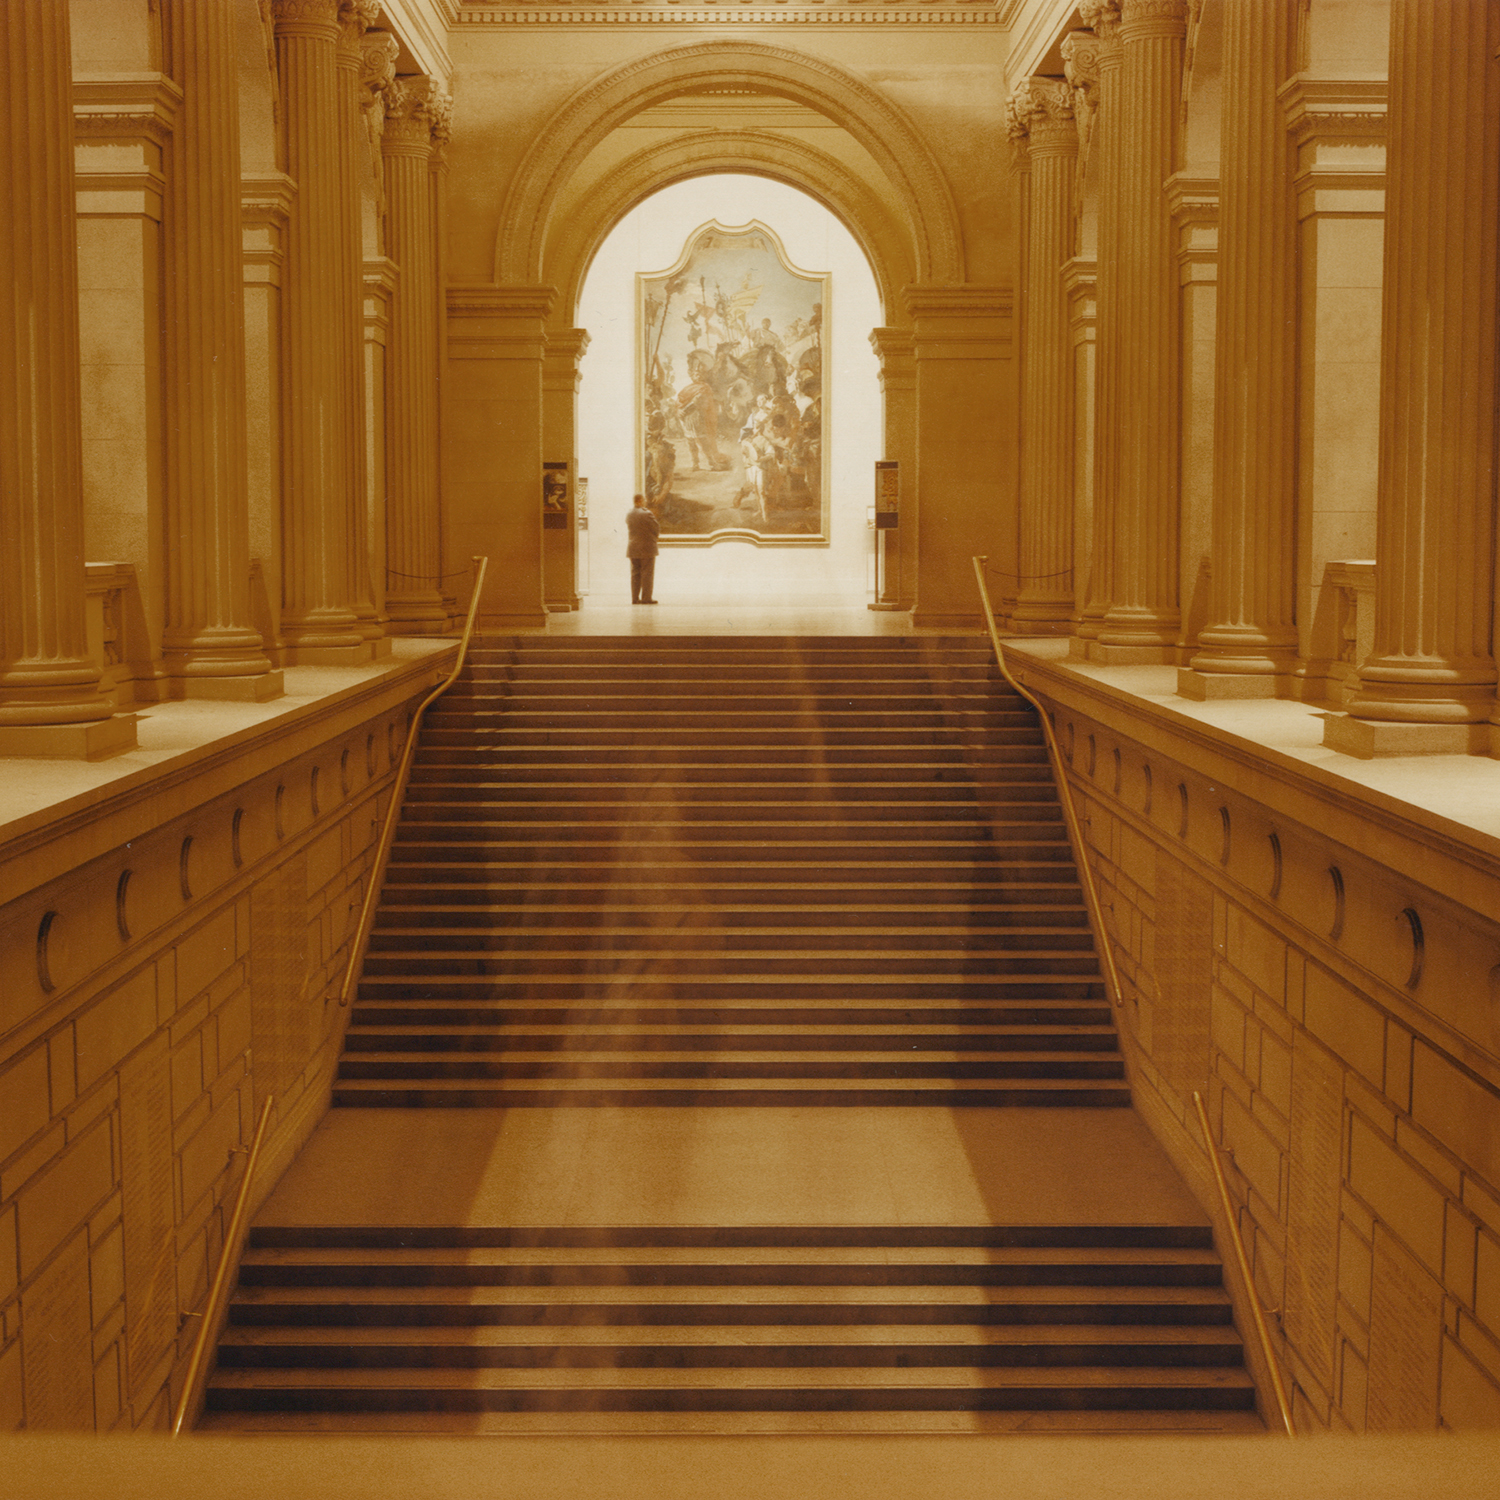 Met Grand Staircase